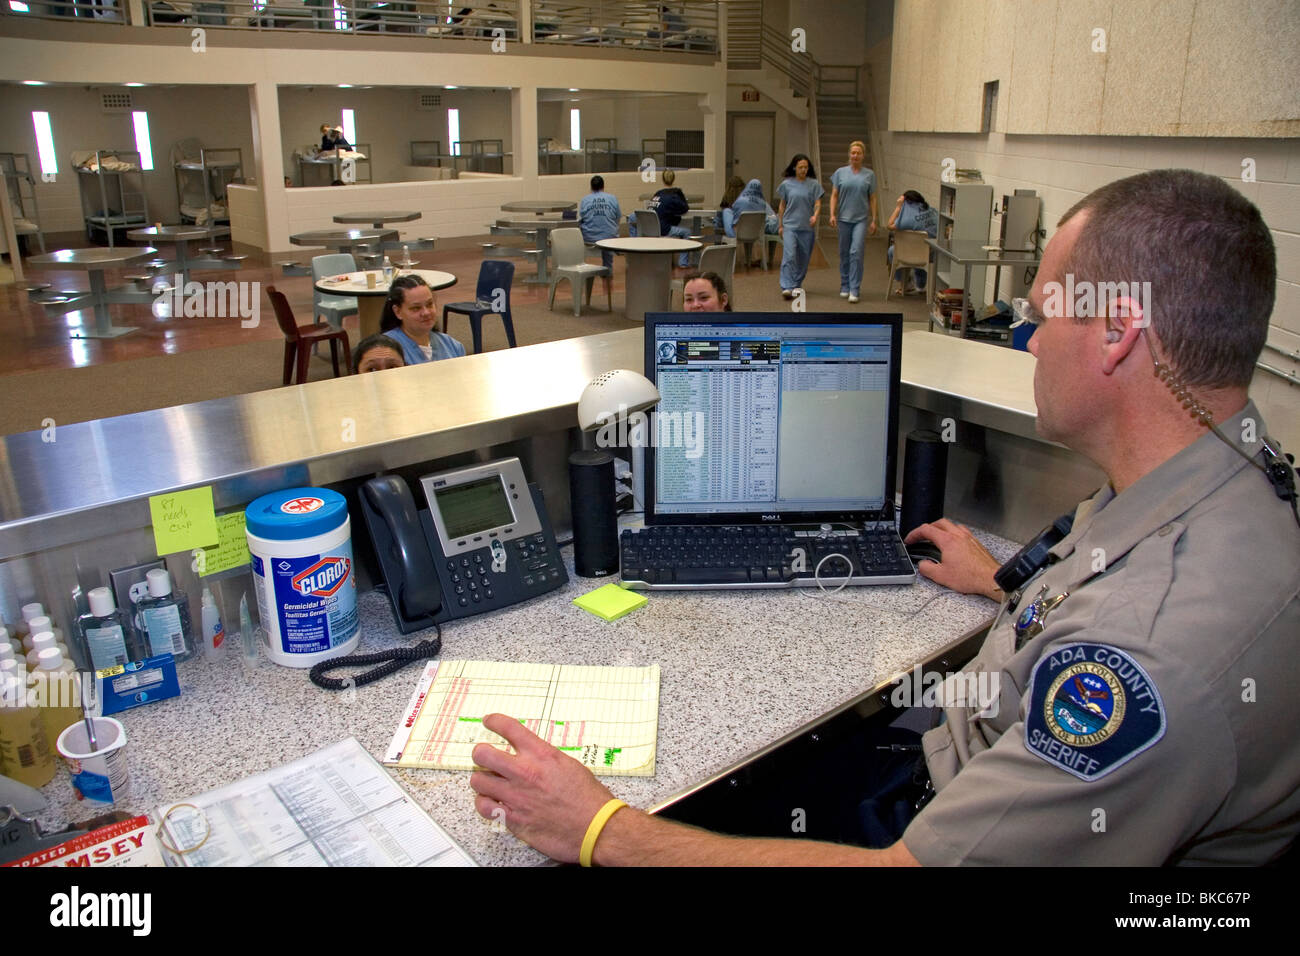 Security officer monitoring the female inmate dormitory of a county jail. - Stock Image